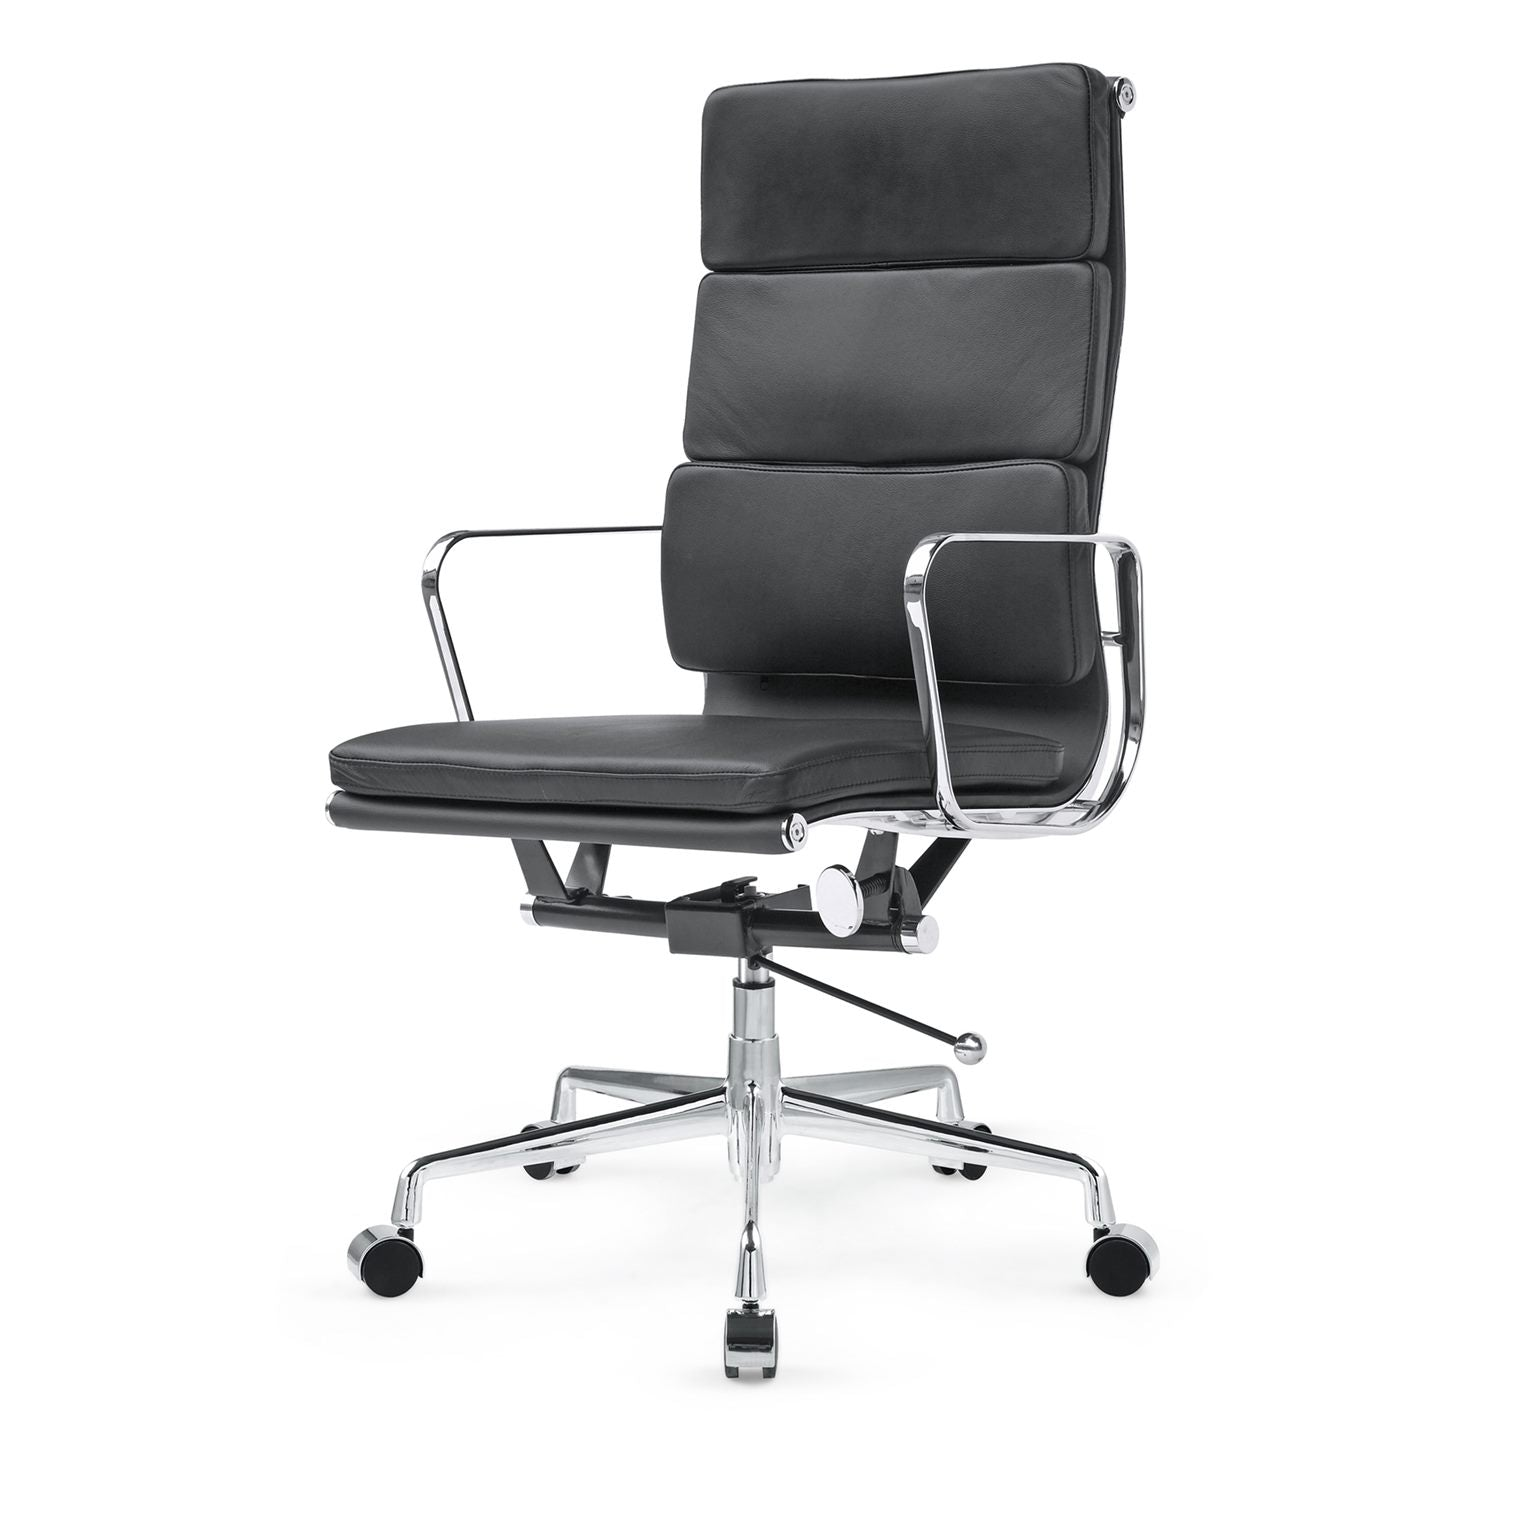 *MG*RP Genuine Leather Eames Soft Pad Office Chair, Black color in stock